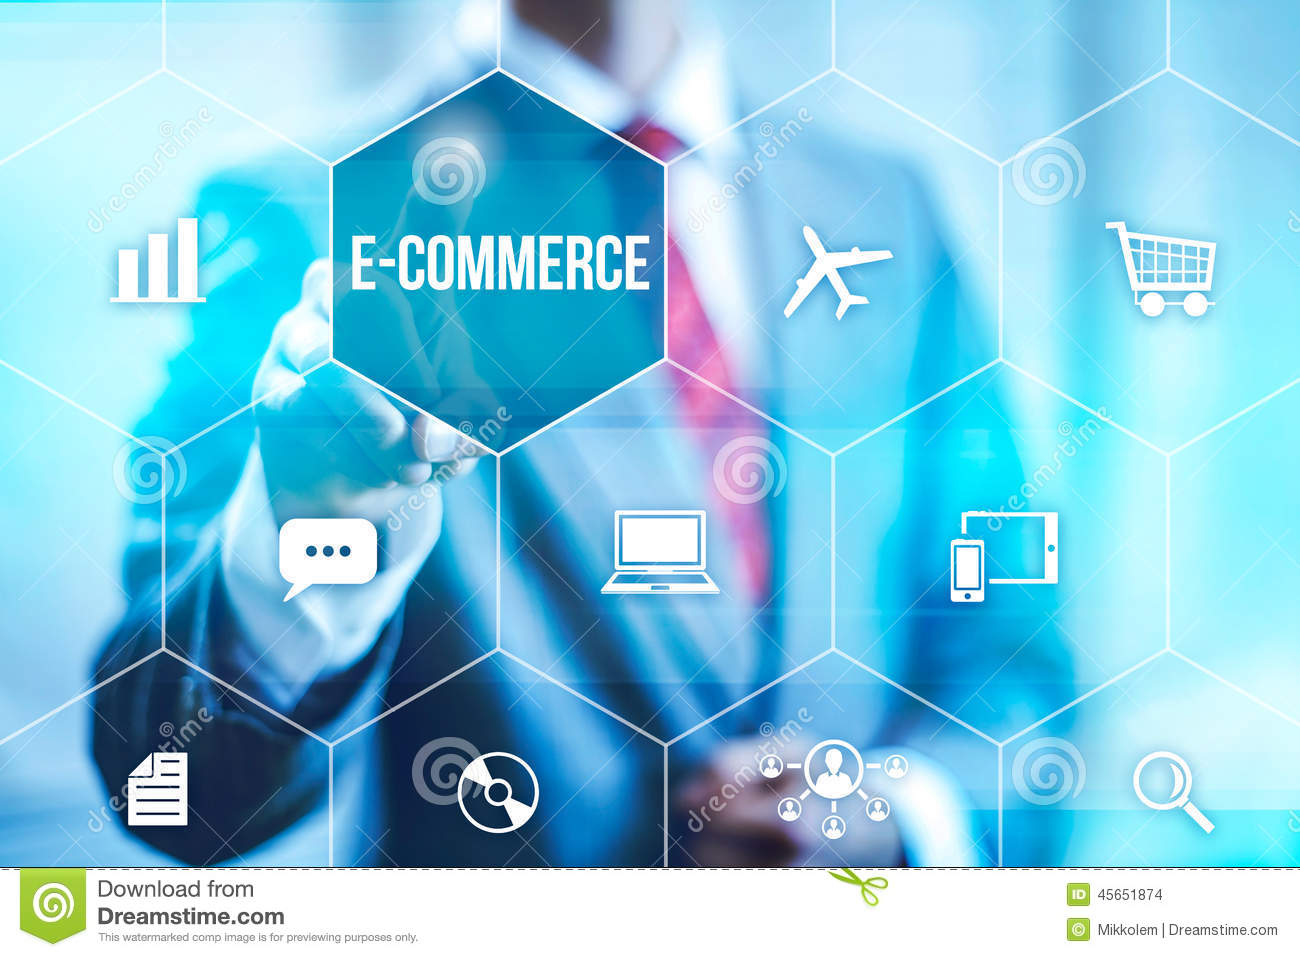 an analysis of e commerce Categories of e-commerce as with traditional commerce, there are four principal categories of e-commerce: b2b, b2c, c2b and c2c b2b (business to business) – this involves companies doing business with each otherone example is manufacturers selling to distributors and wholesalers selling to retailers.